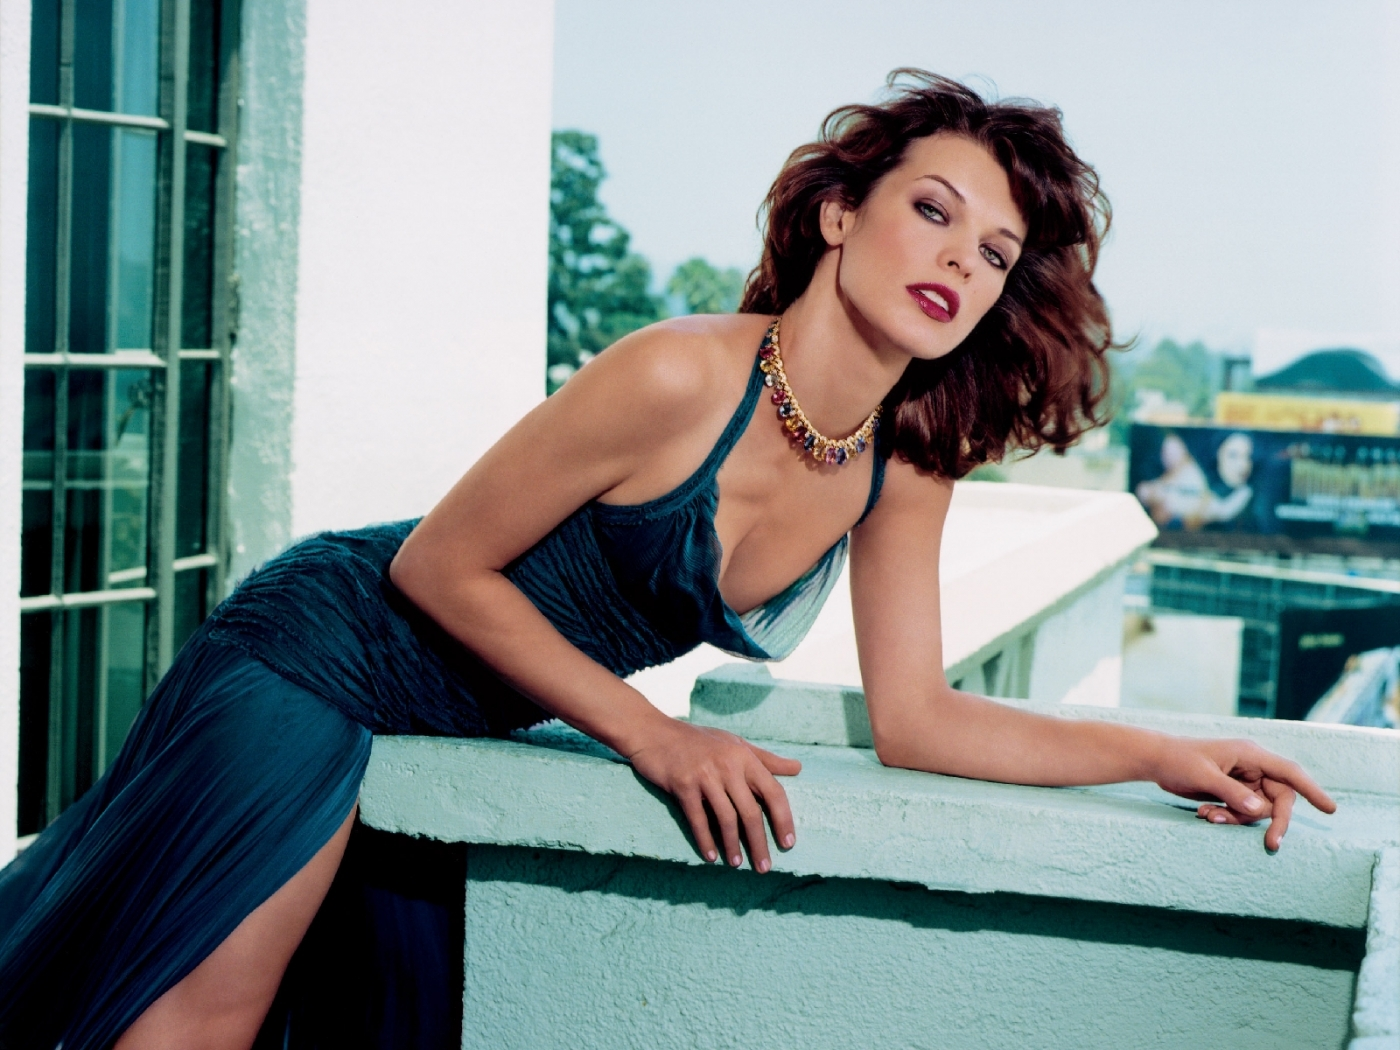 Popular Milla Jovovich images for mobile phone